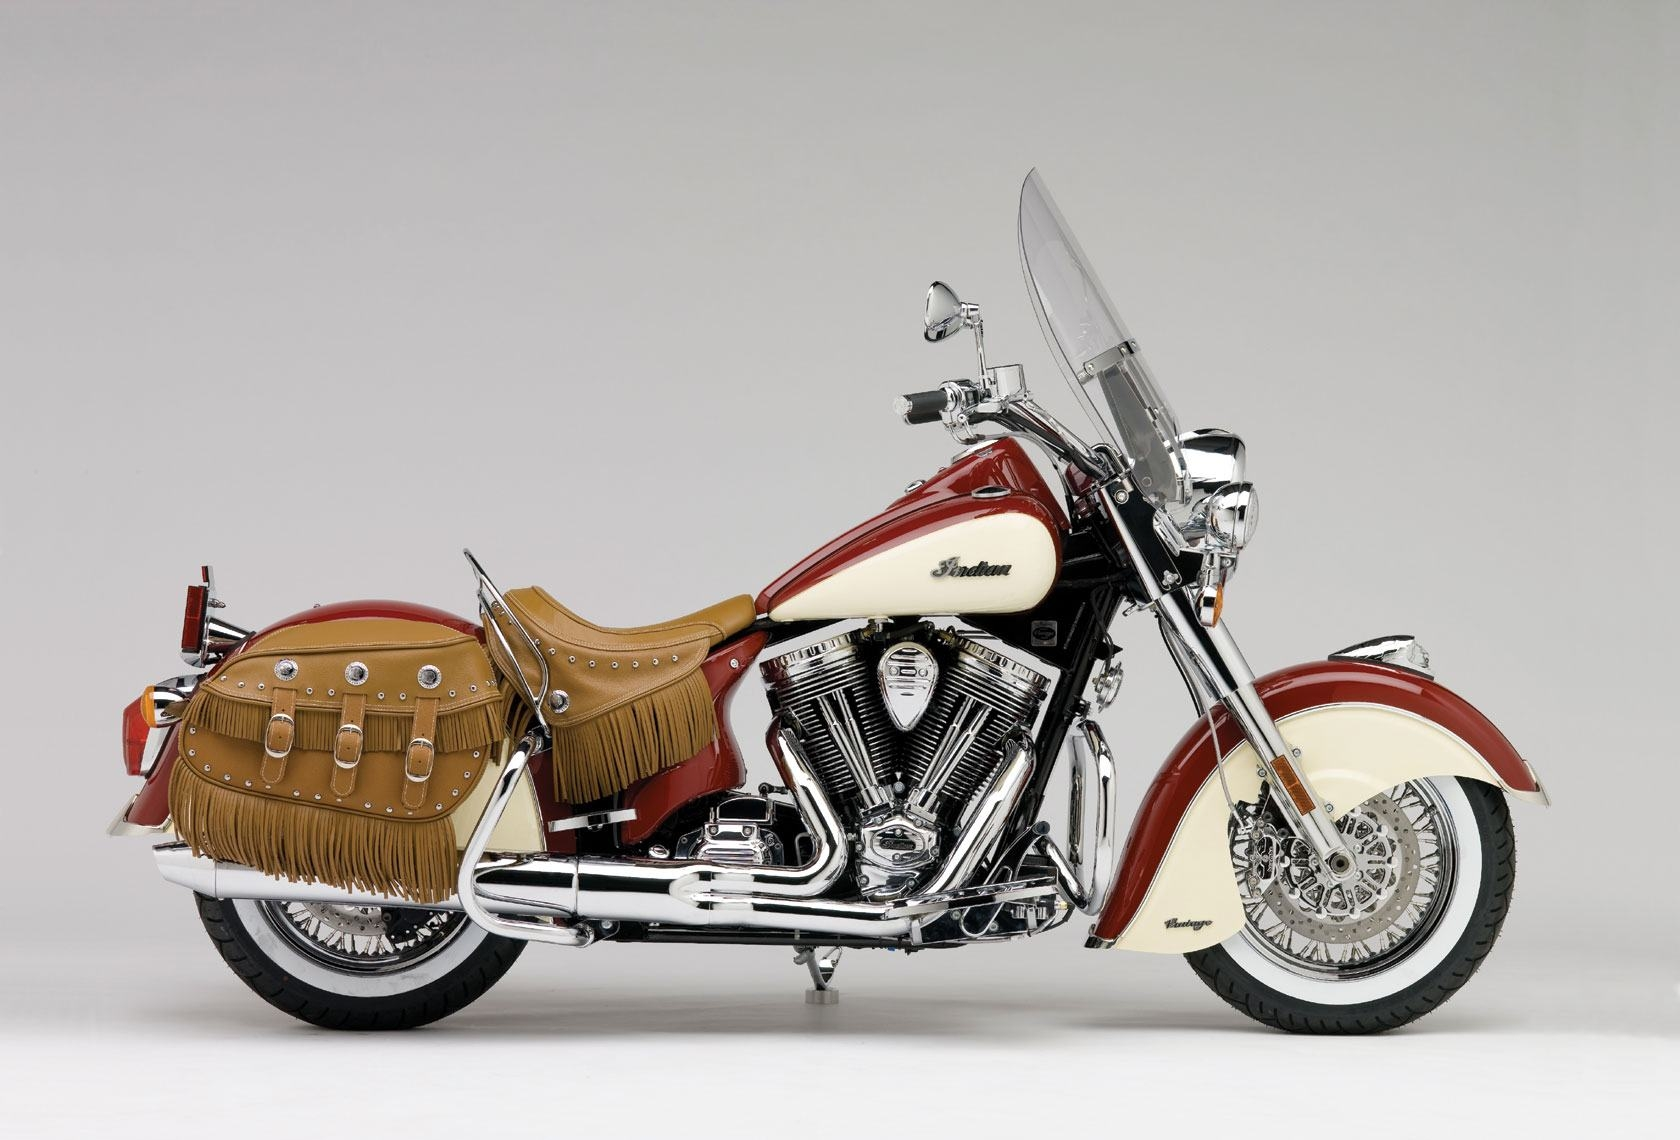 Wallpapers Backgrounds   ZIP file wallpaper 2013 INDIAN Chief Vintage 1680x1140